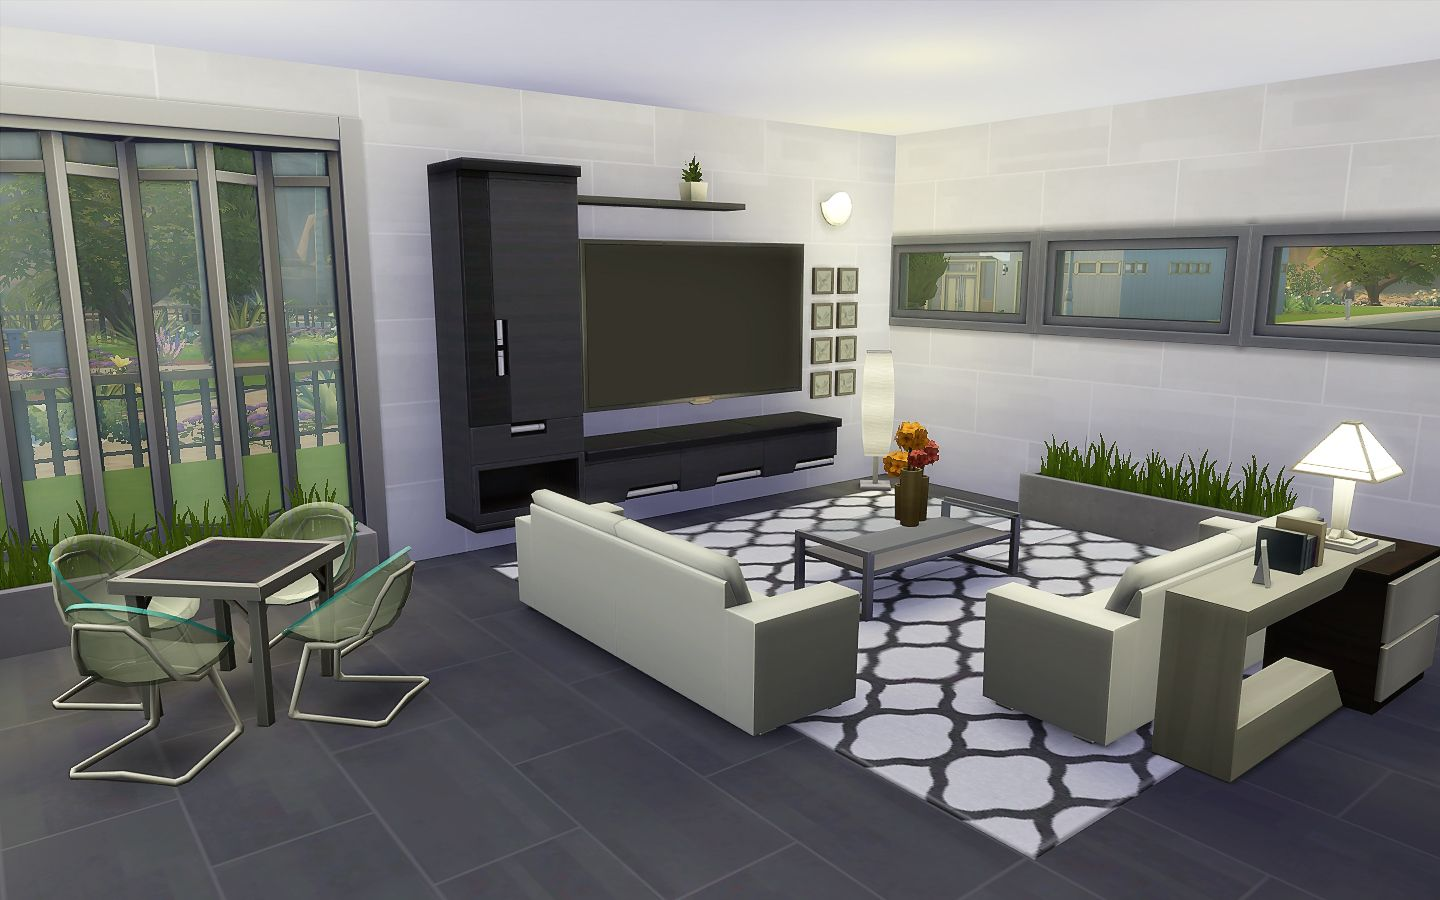 Sims 3 Schlafzimmer Modern - House 24 The Sims 4 House 5 Sims Building Sims 4 Build Sims